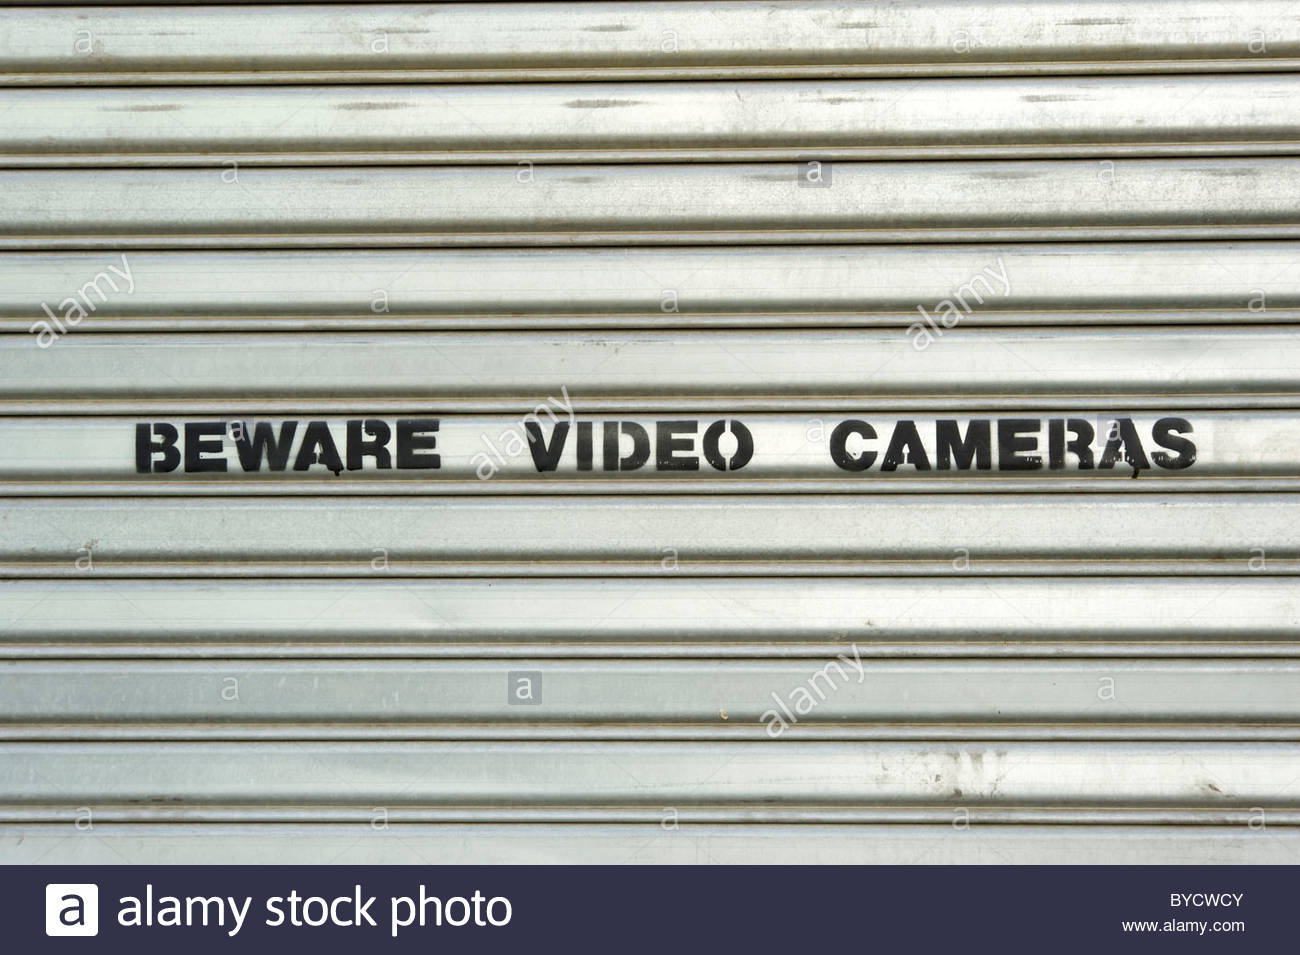 Beware Video Cameras sign on metal security shutters, USA - Stock Image